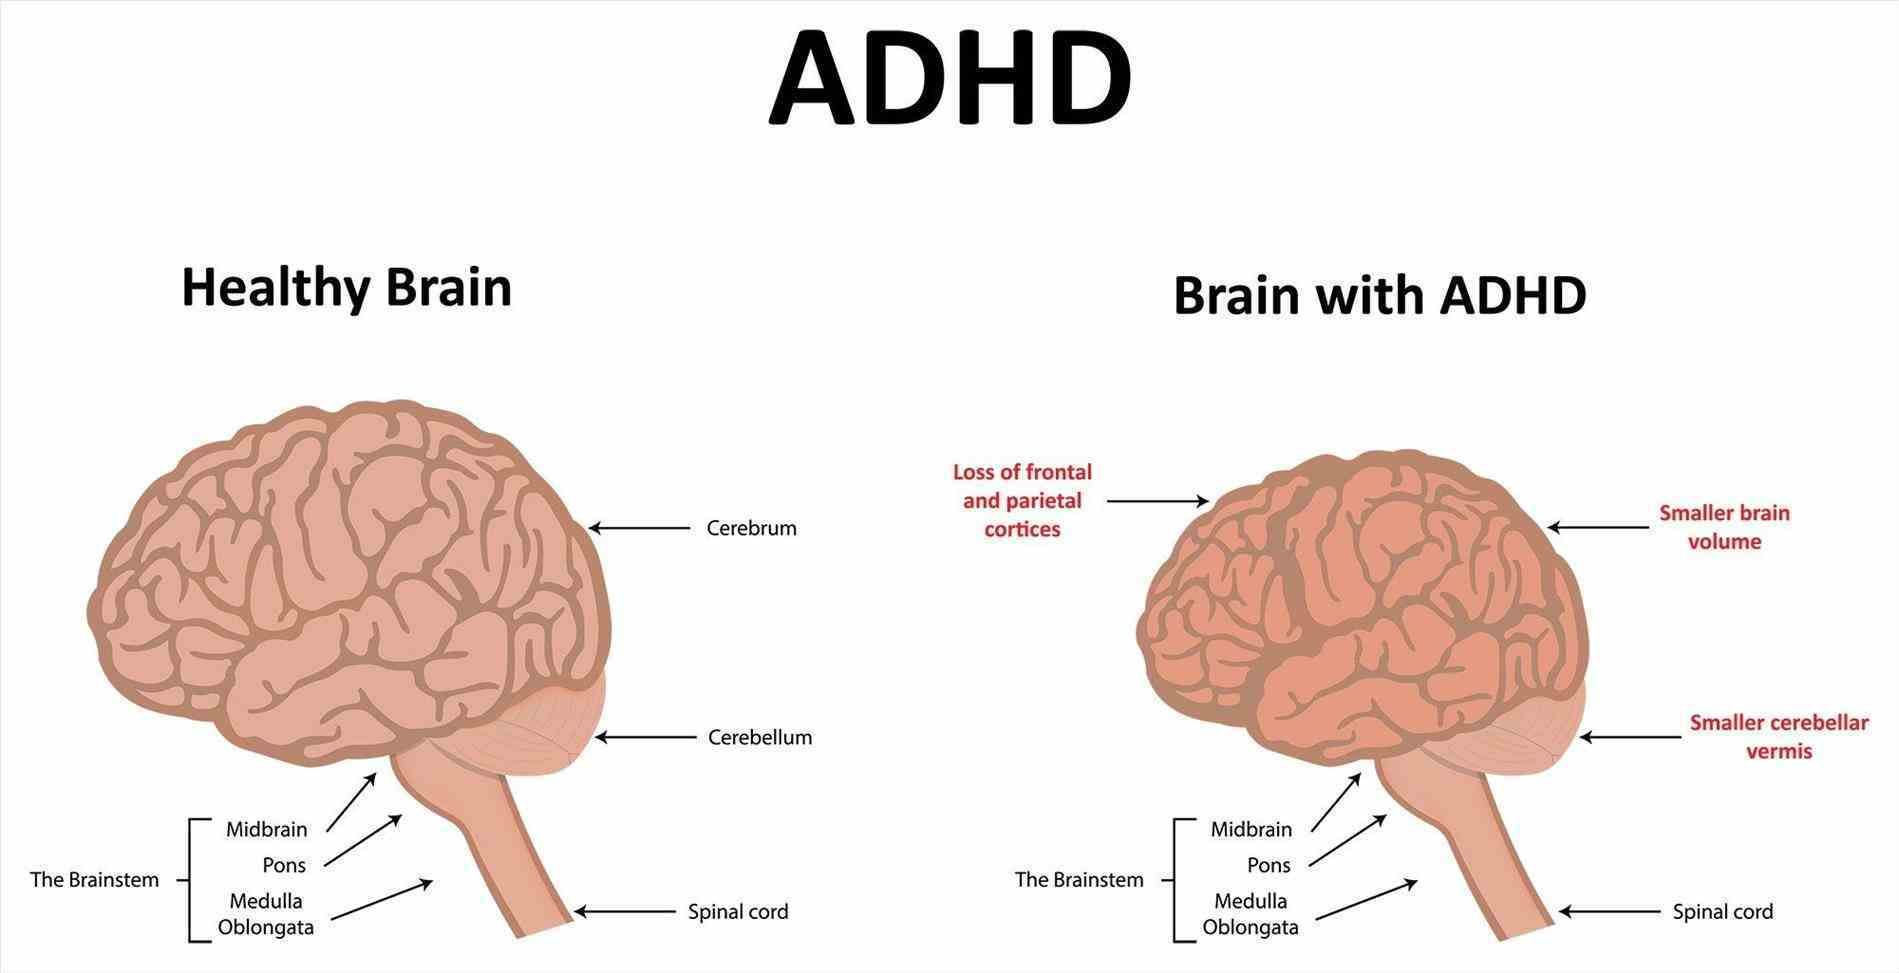 Adhd Brain Diagram Cross Section - Wiring Diagram & Electricity ...